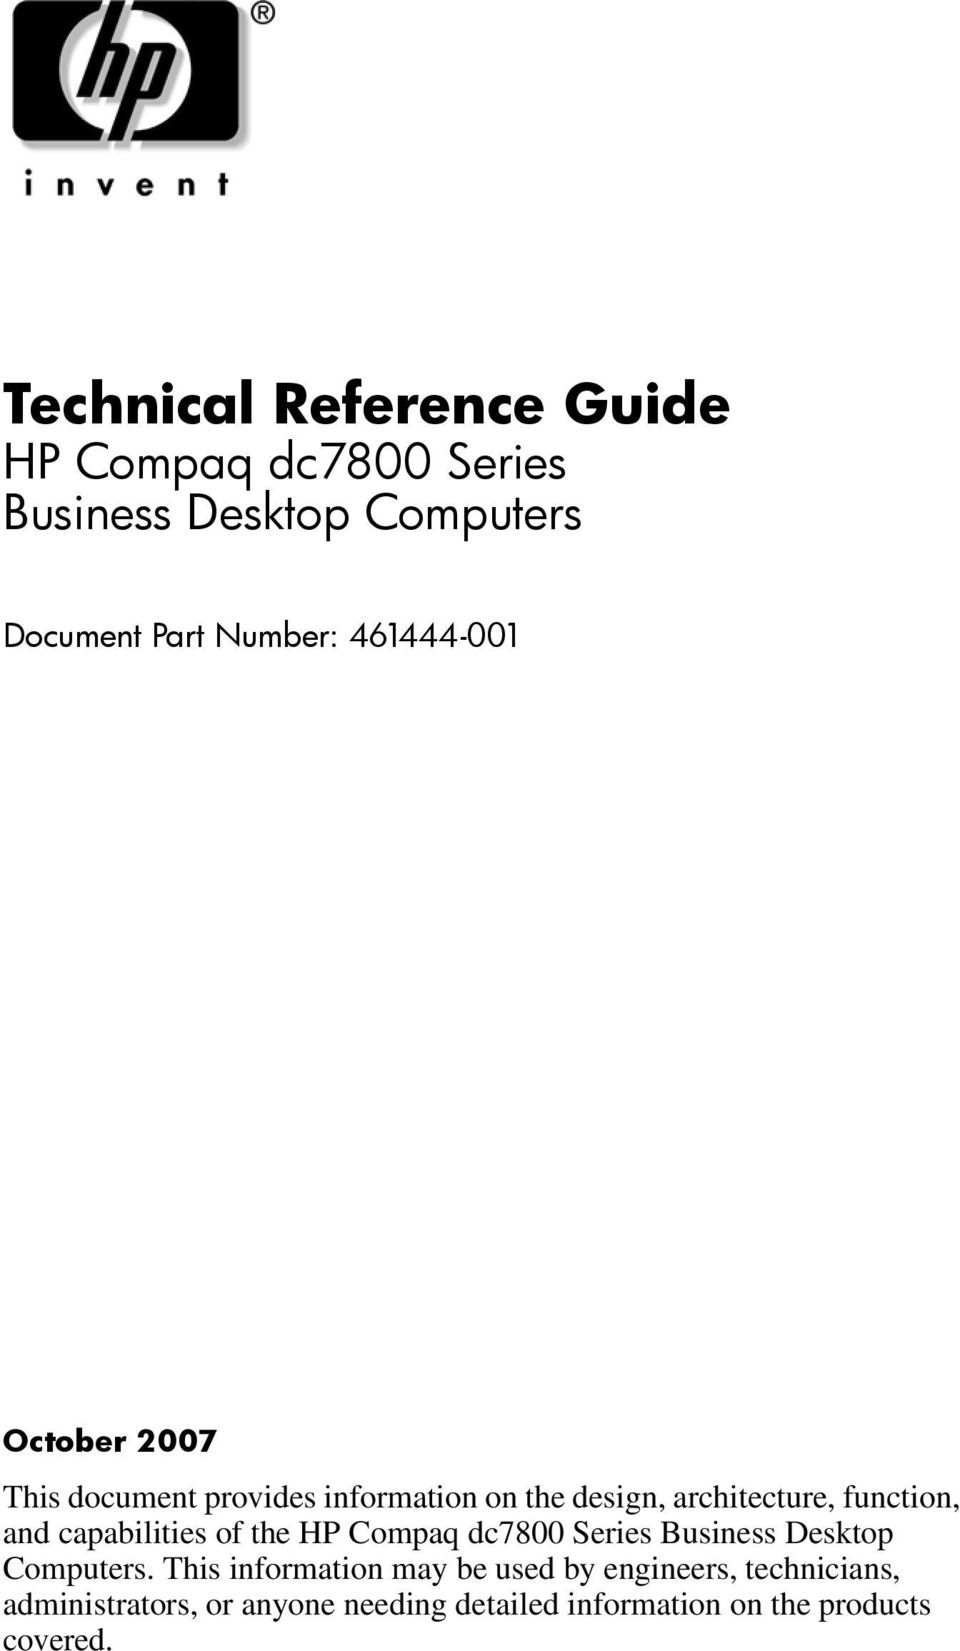 Technical Reference Guide HP Compaq dc7800 Series Business